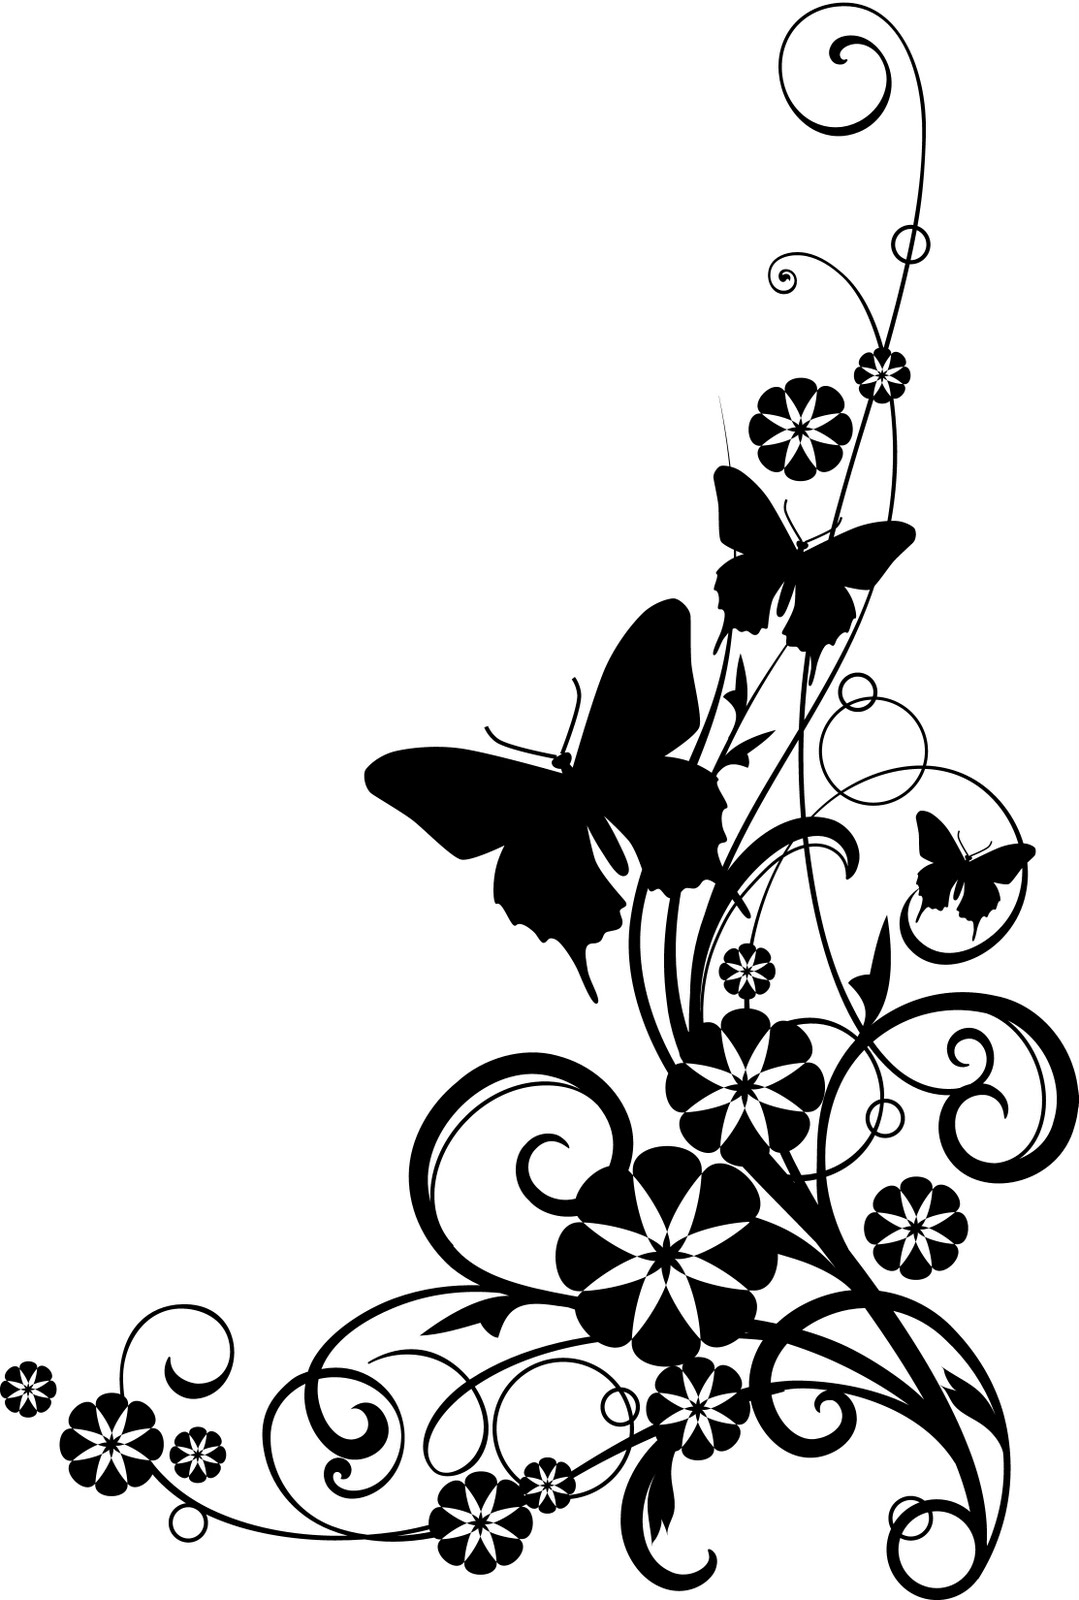 Free Butterfly Borders, Download Free Clip Art, Free Clip.